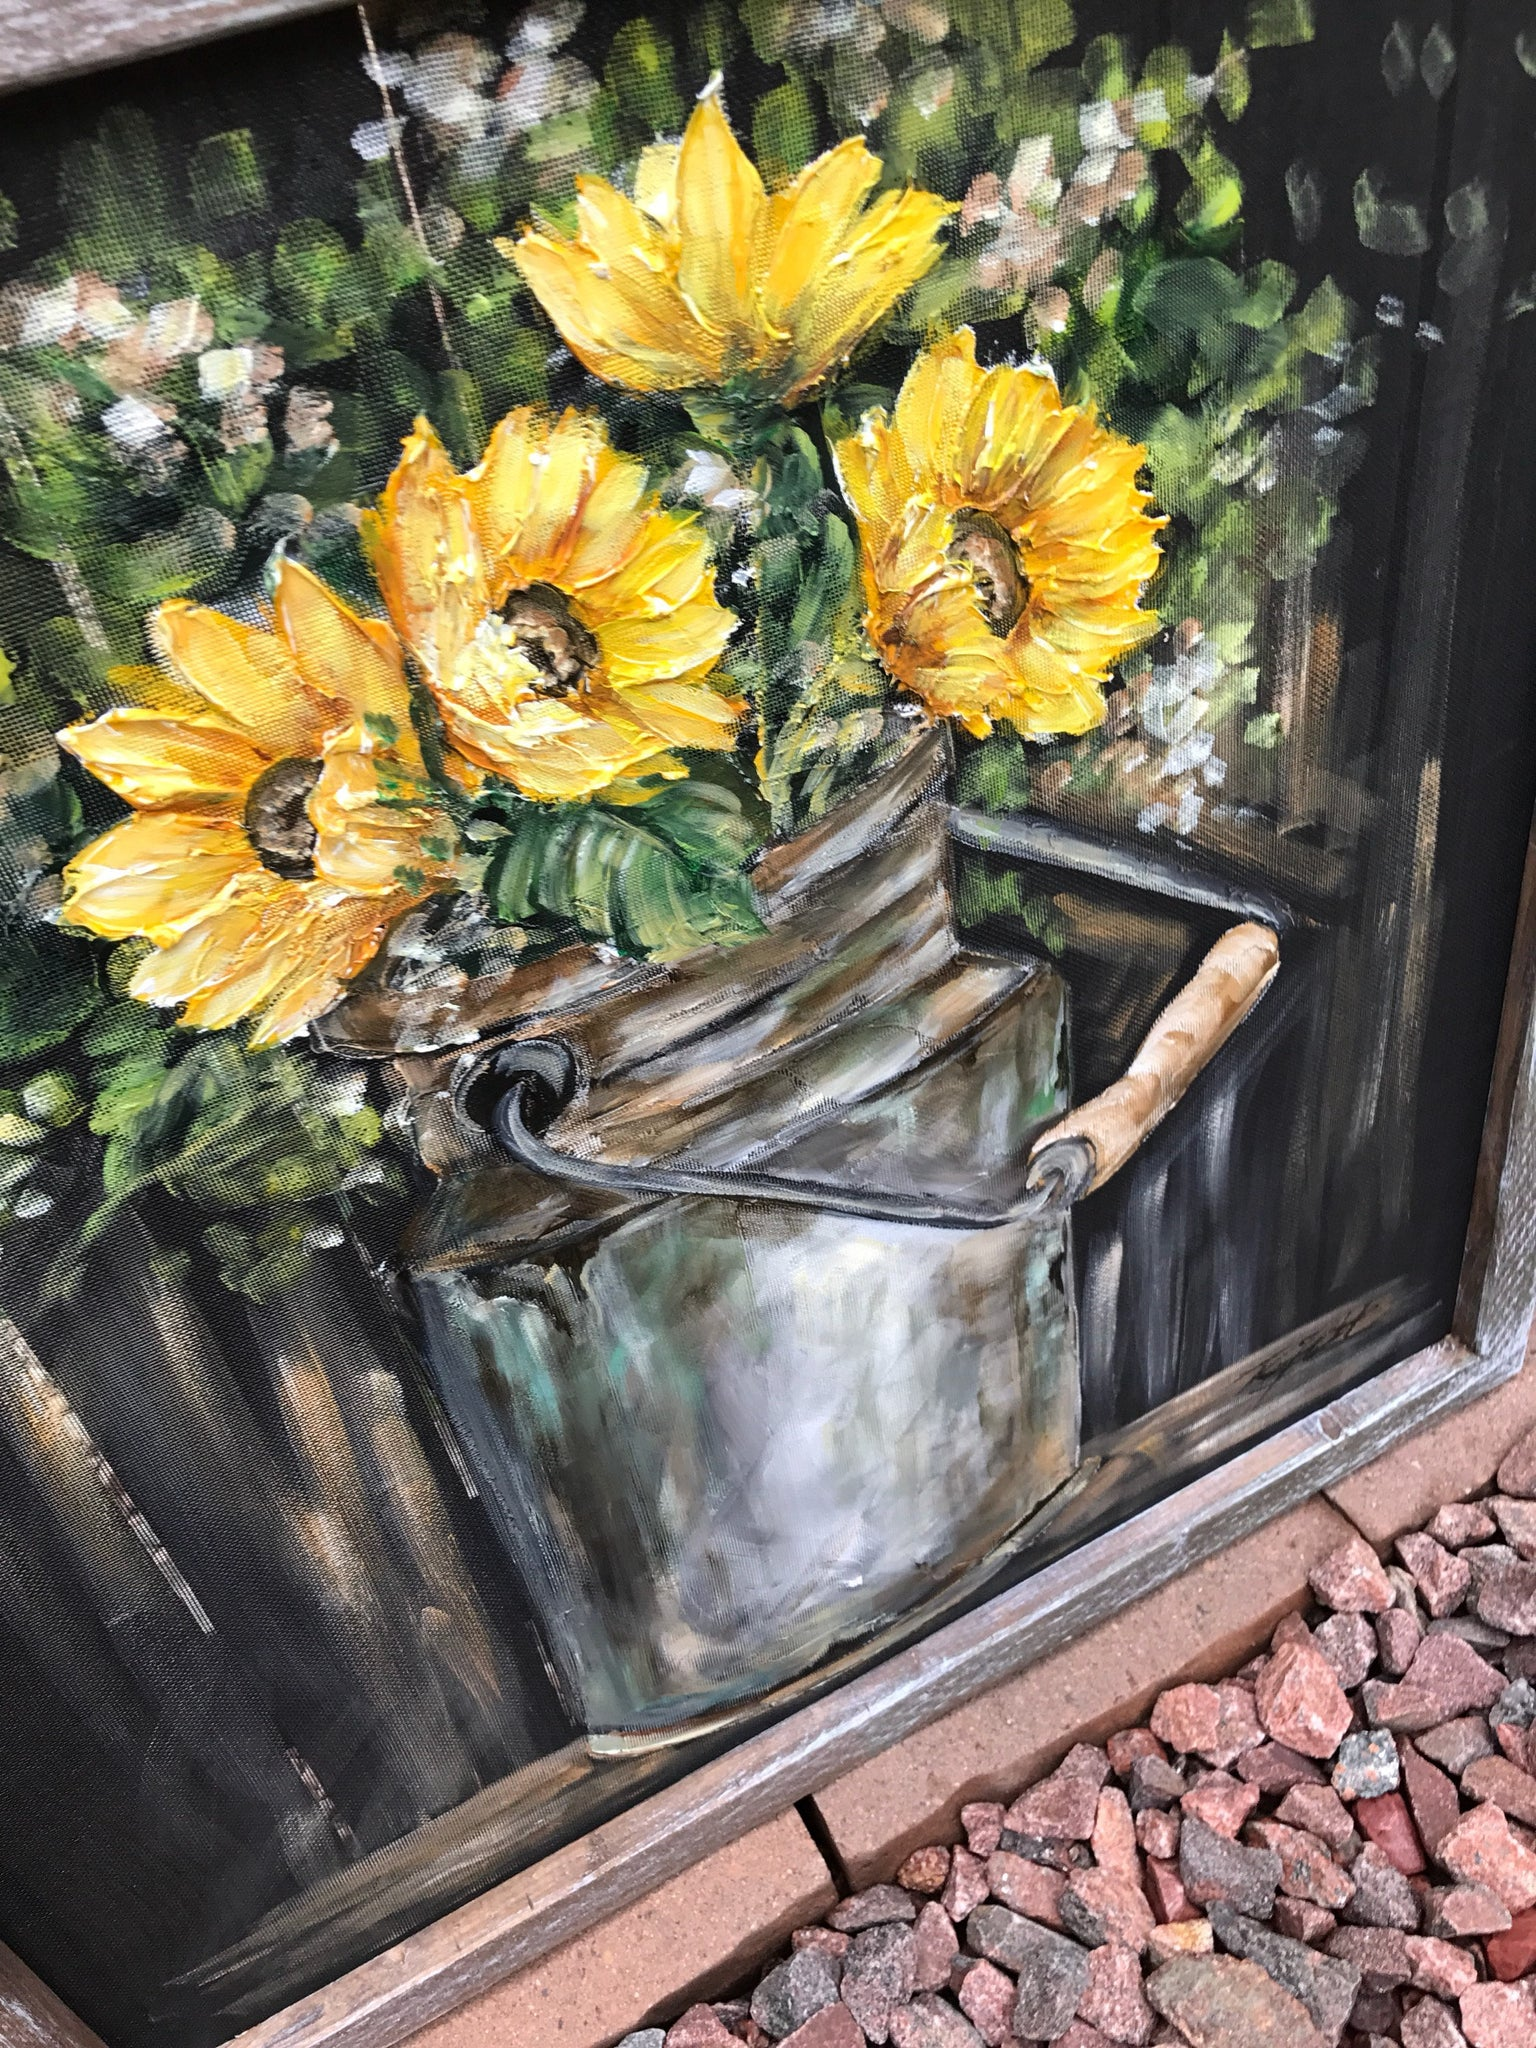 Vintage milk jug with sunflowers